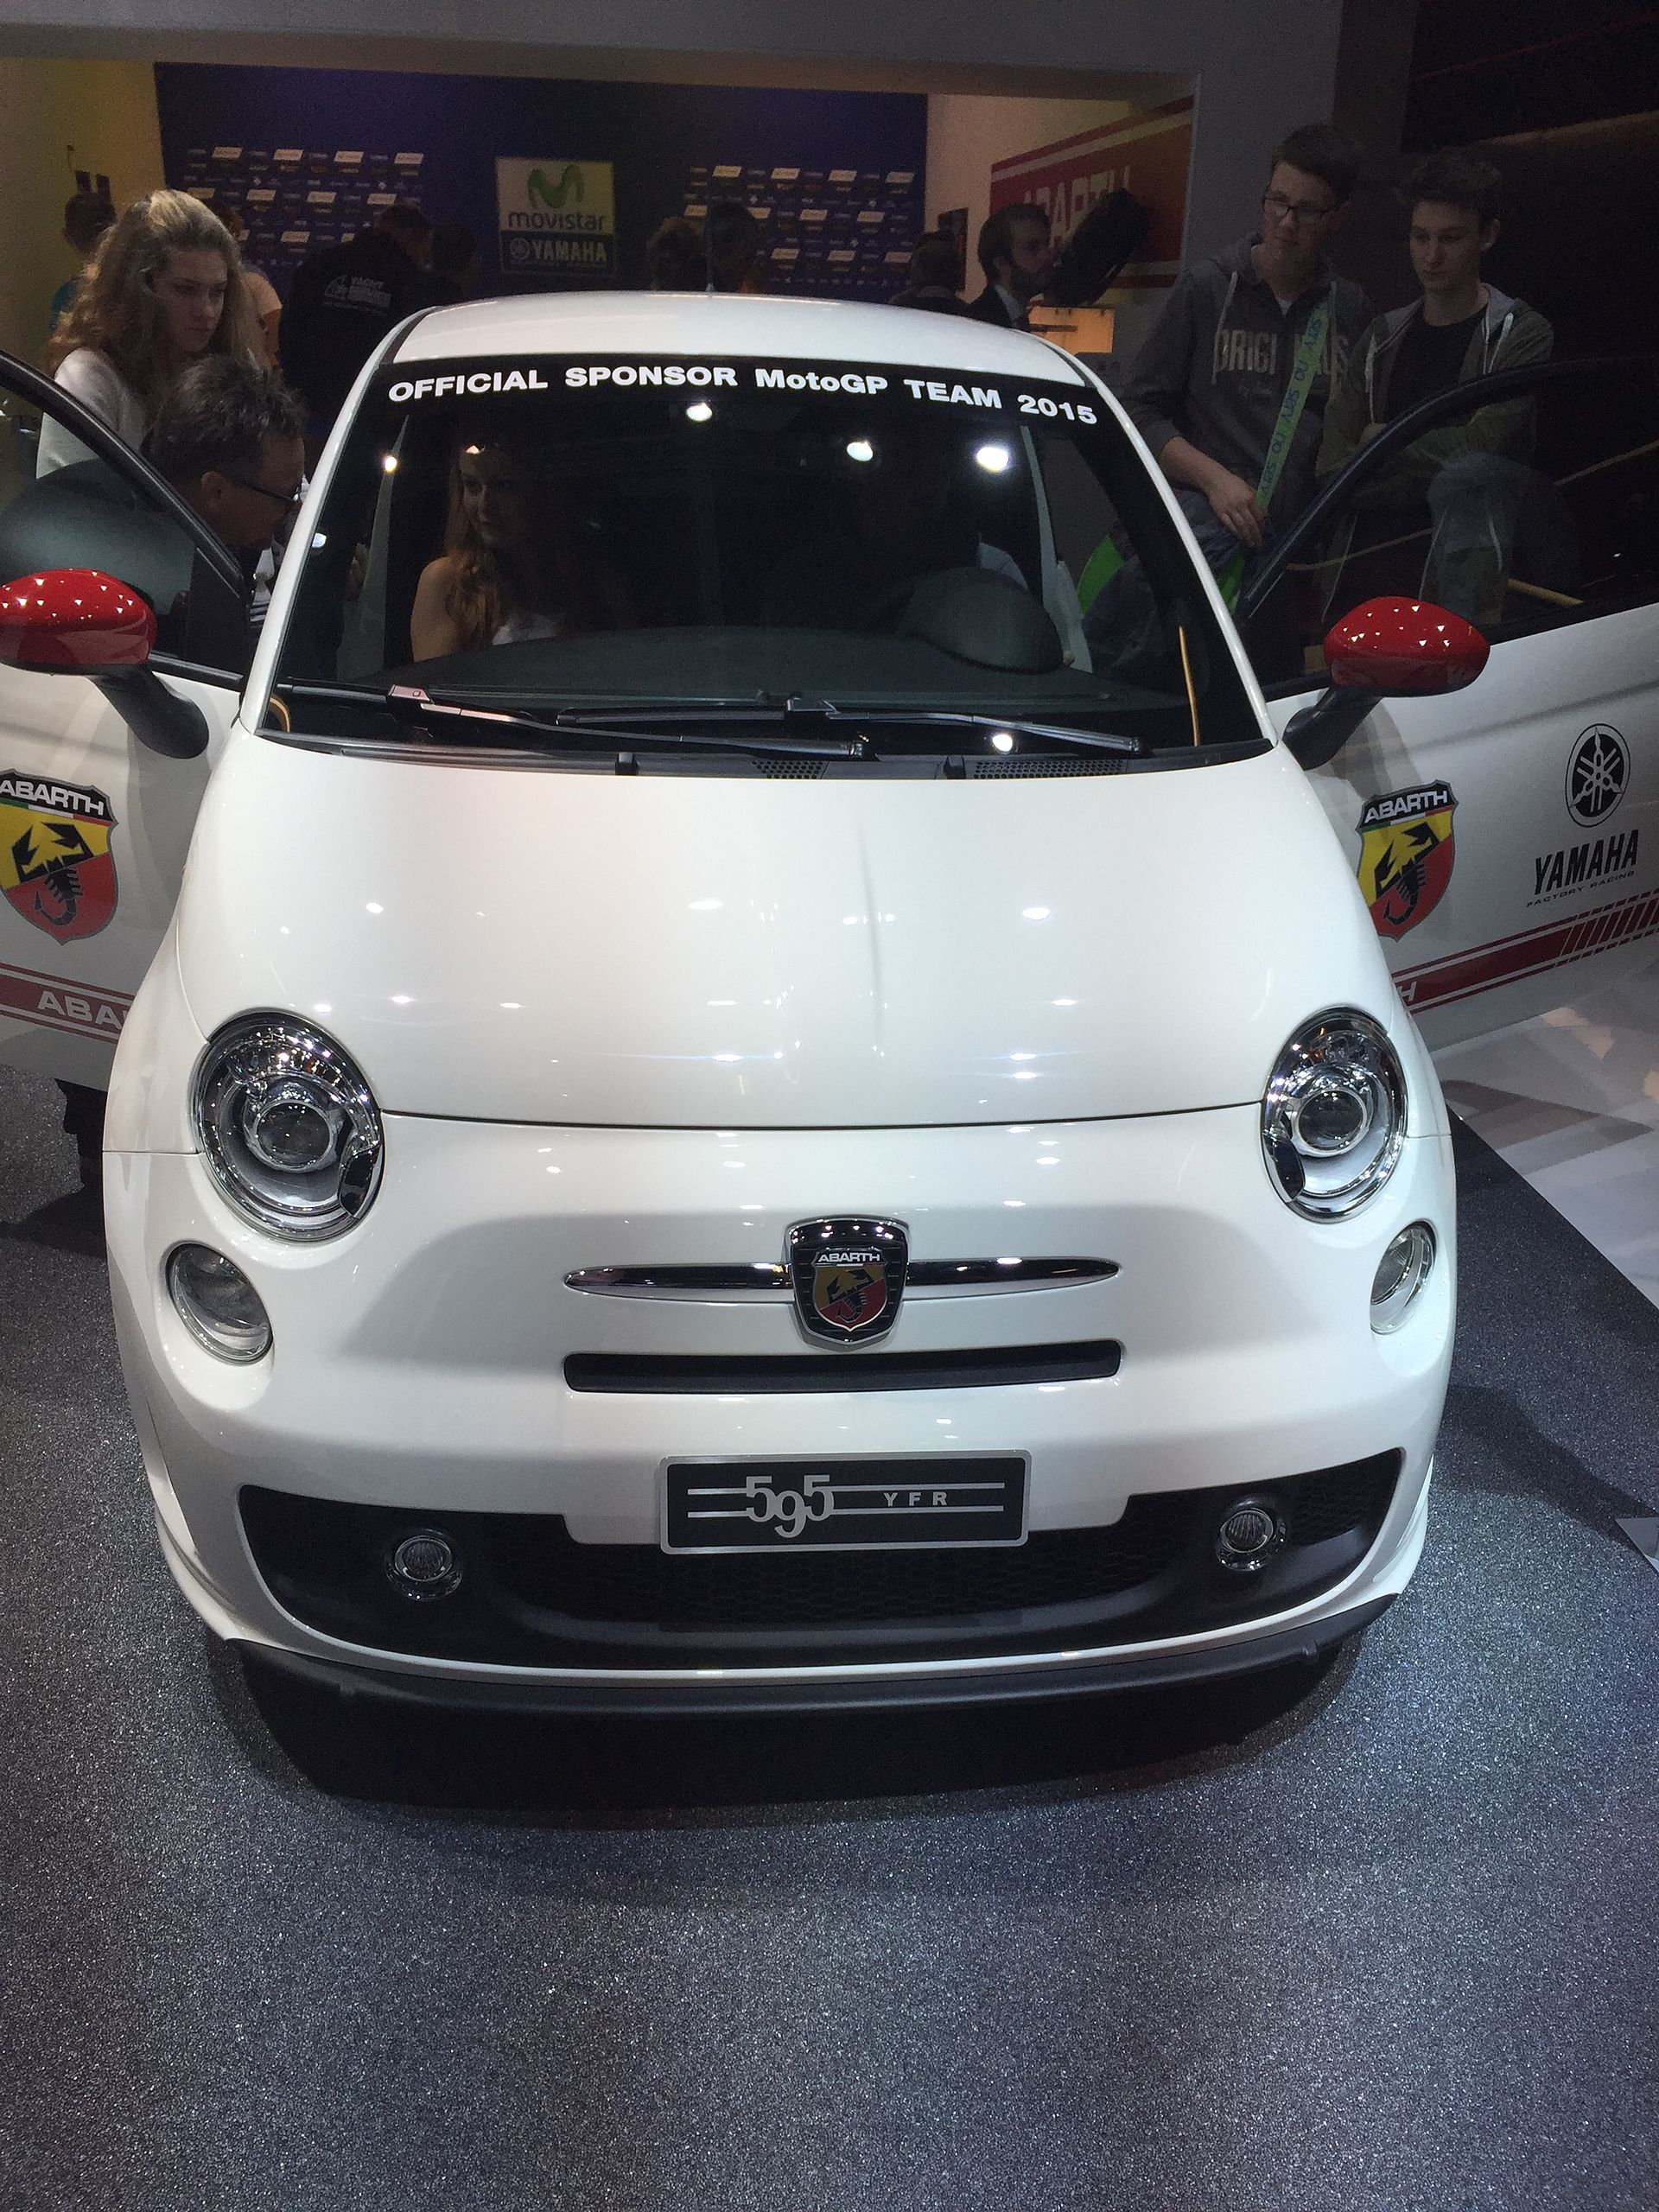 fiat abarth 595 wikipedia. Black Bedroom Furniture Sets. Home Design Ideas